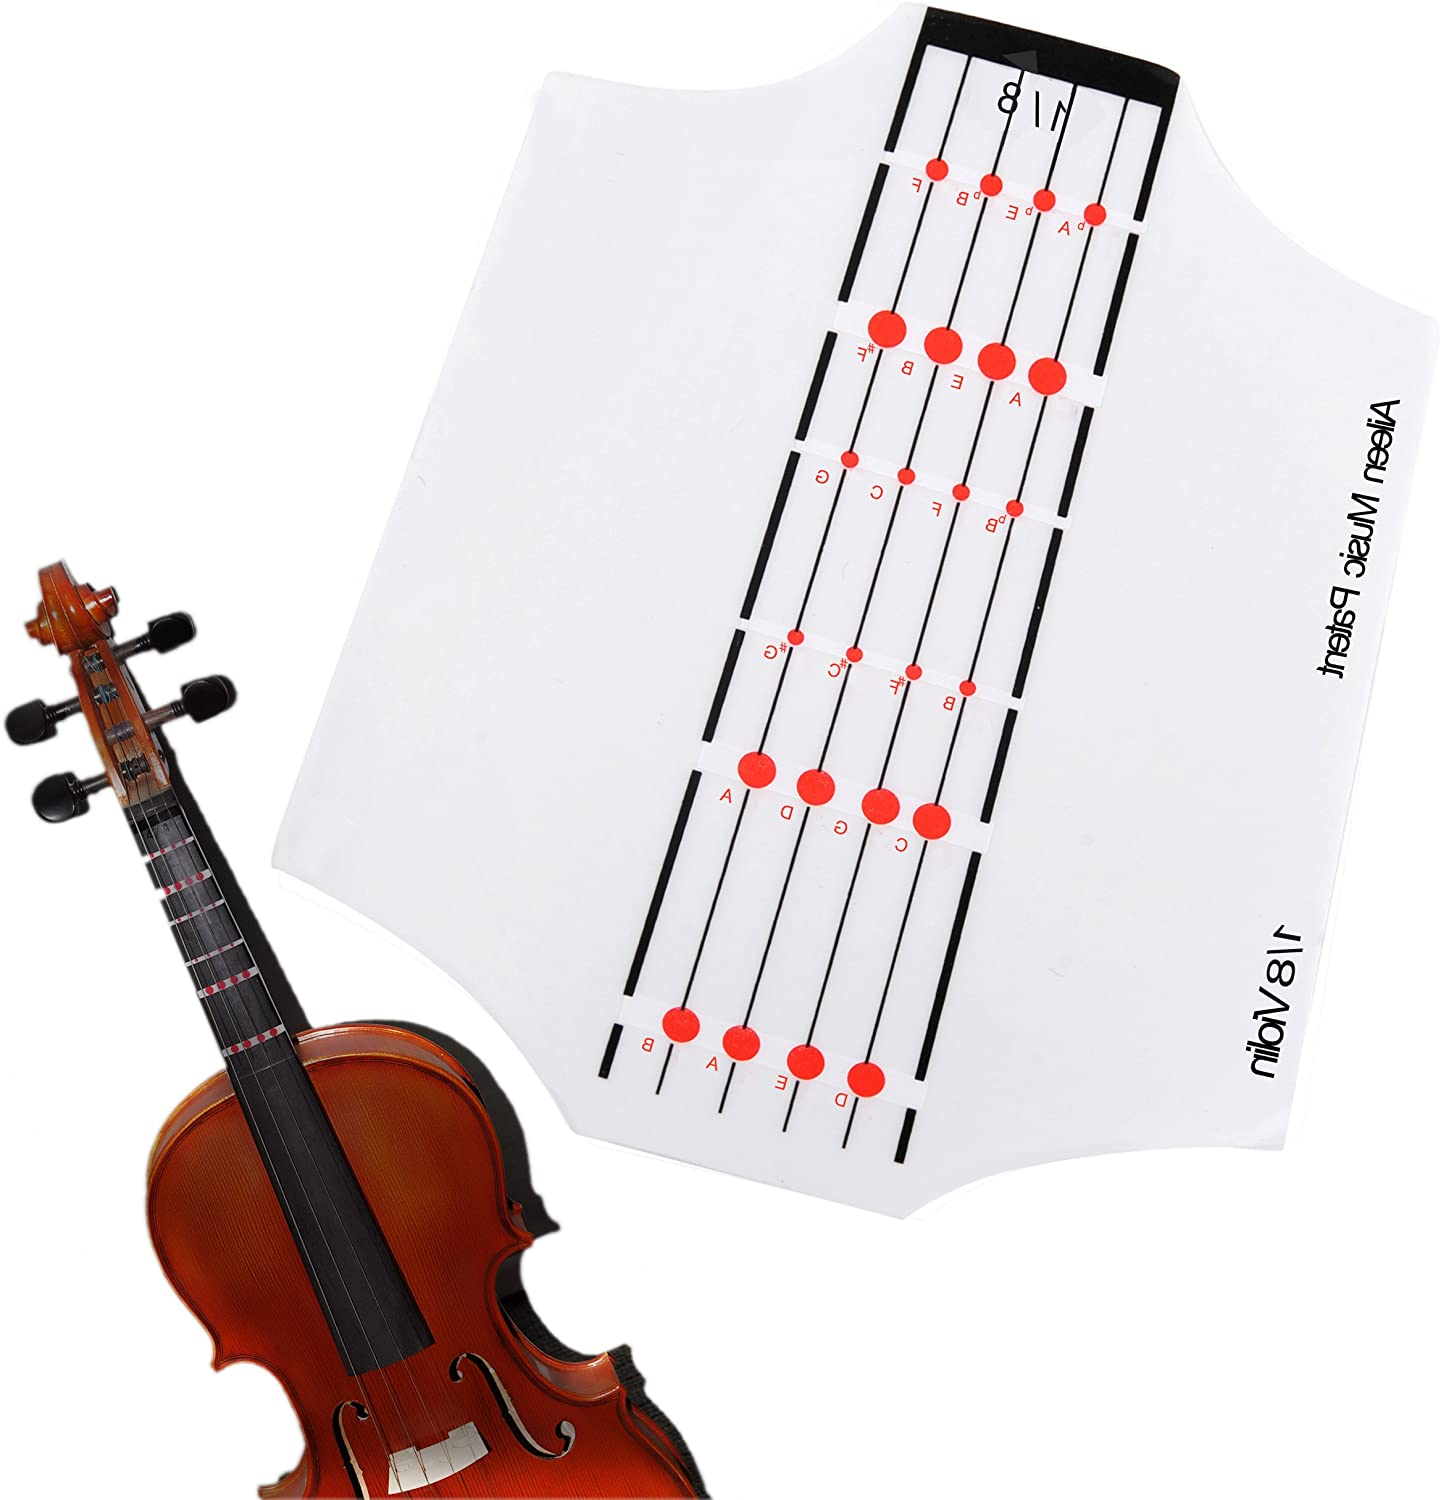 FFG501-18 Made in China Aileen Violin Fingerboard Sticker Fret Guide Label Position Indicator for 4/4 3/4 1/2 1/4 1/8 Size (1/8)